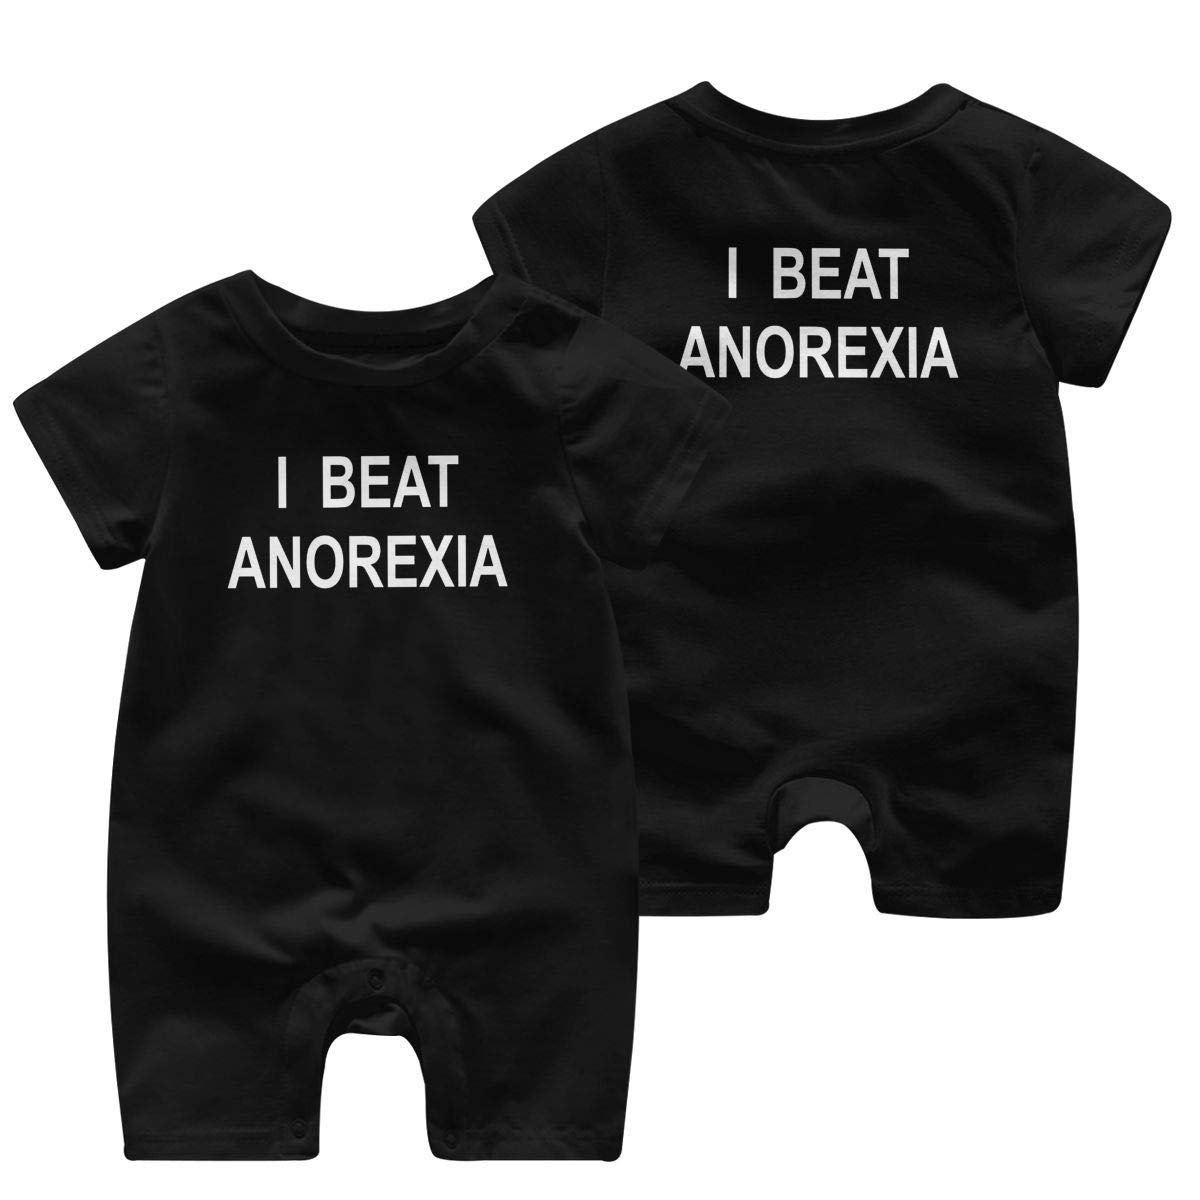 I Beat Anorexia Romper Short Sleeve Basic Romper Coveralls Solid Color Double Sides Print Baby Boy//Girl Playsuit Jumpsuits